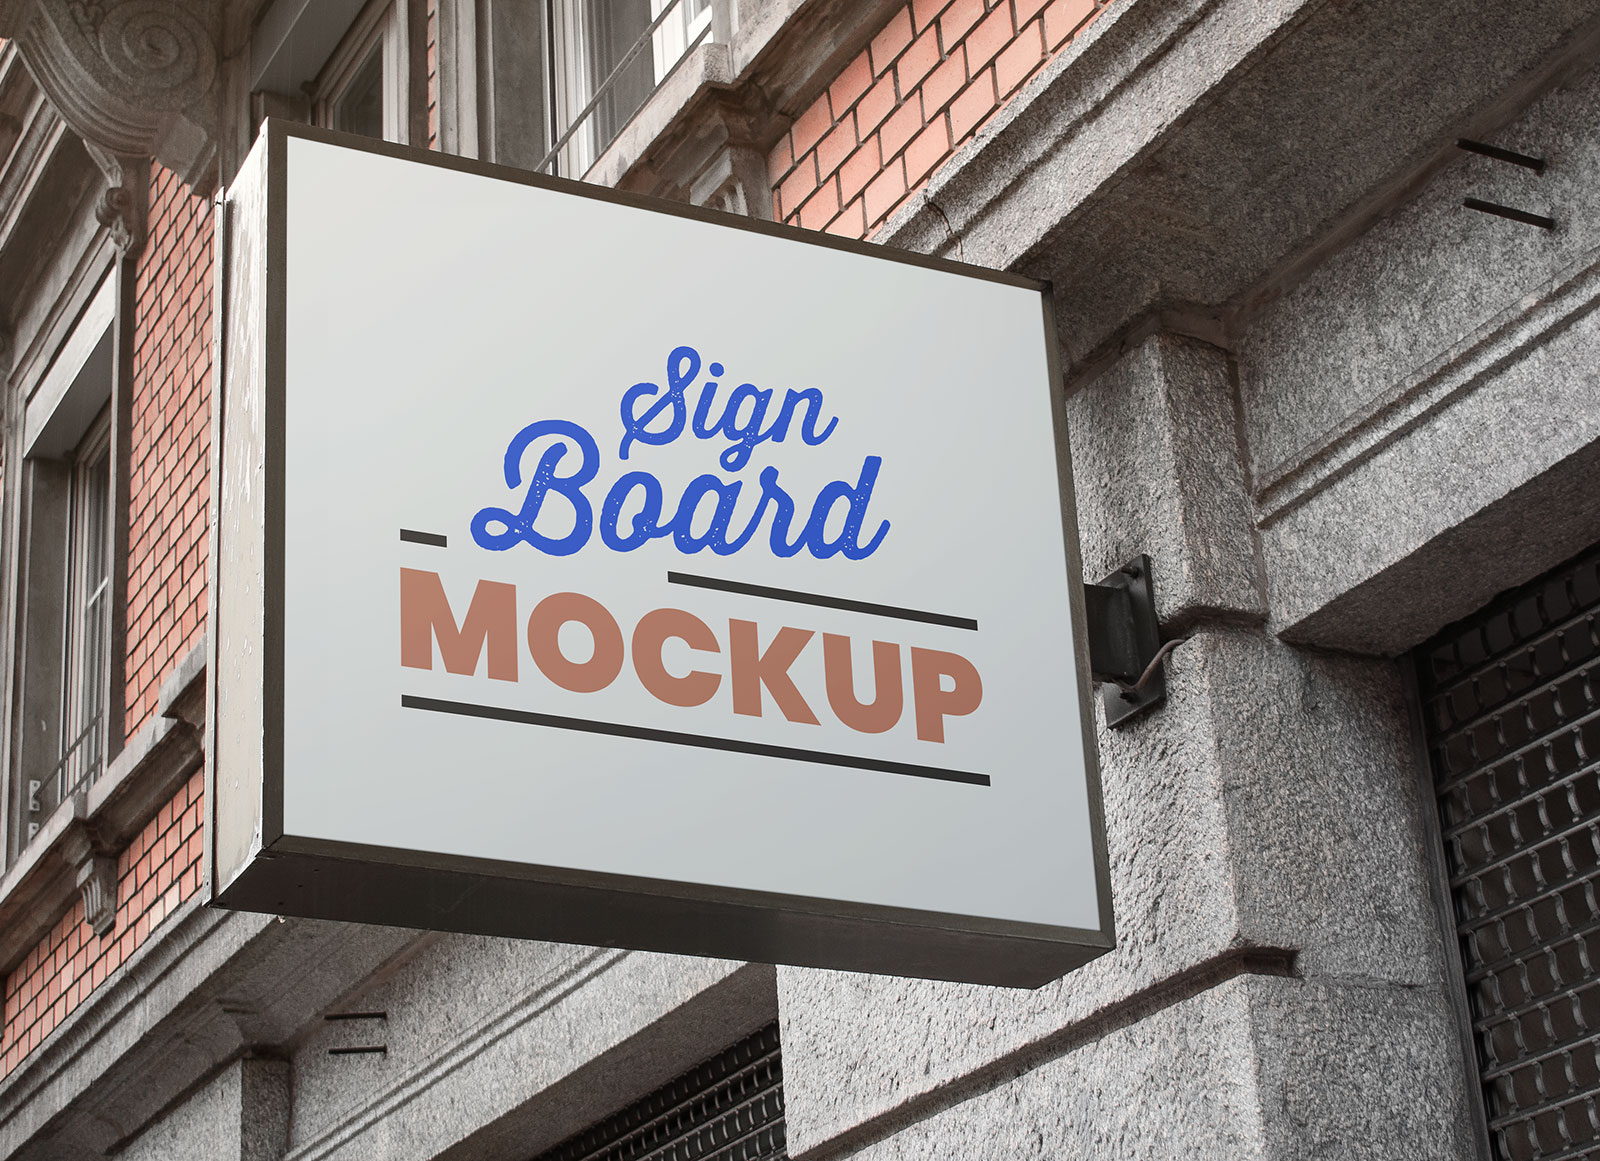 Free-Square-Wall-Mounted-Signage-Board-Mockup-PSD